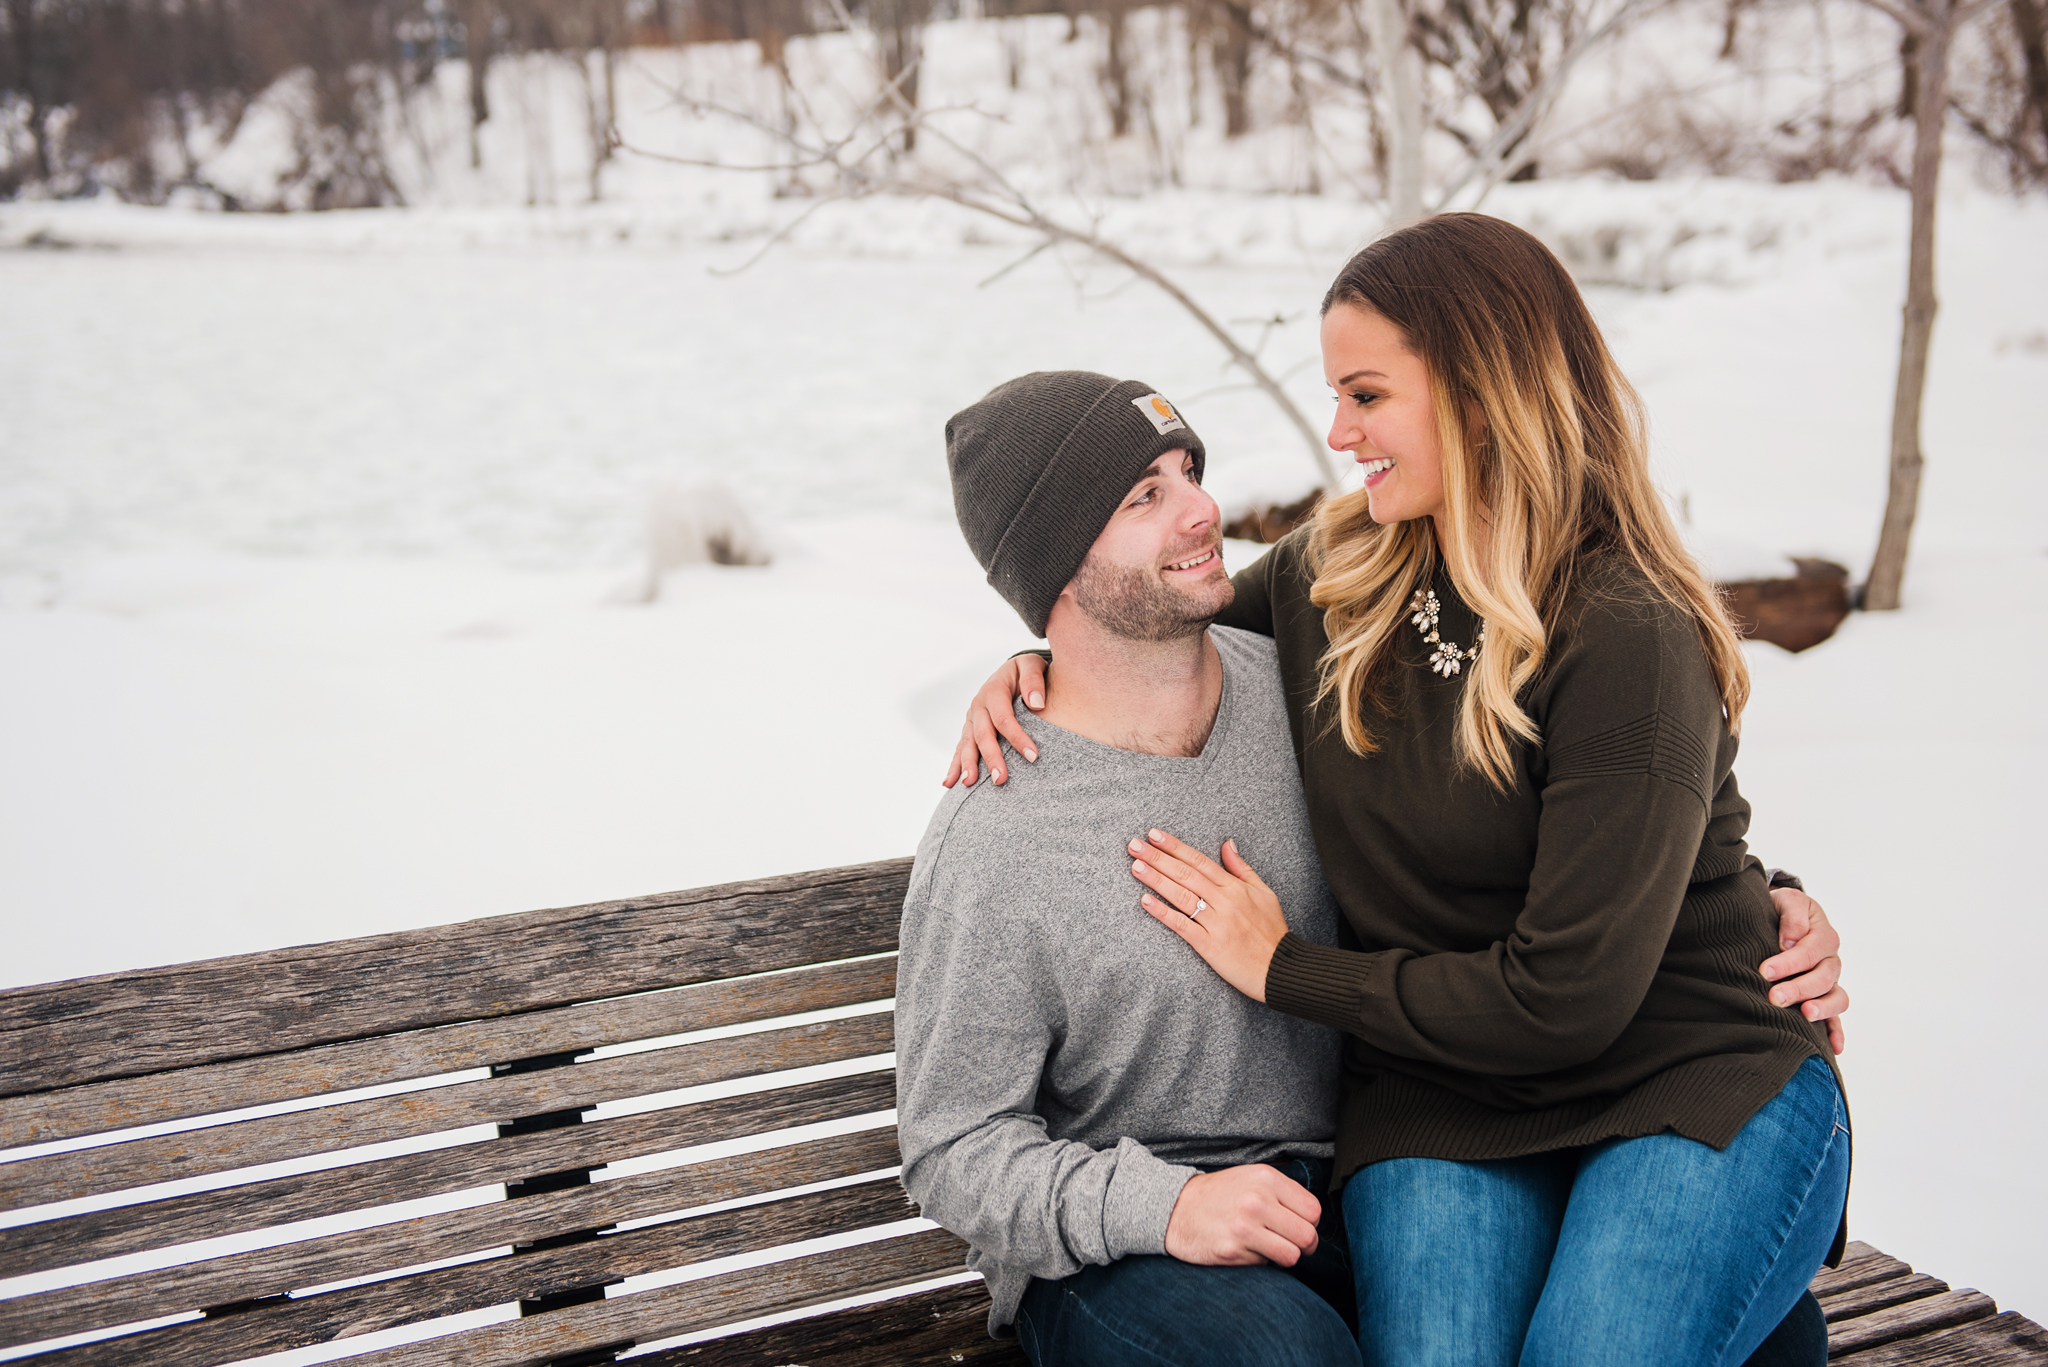 Webster_Park_Engagement_Session_Rochester_NY_photographer_DSC_6483.jpg